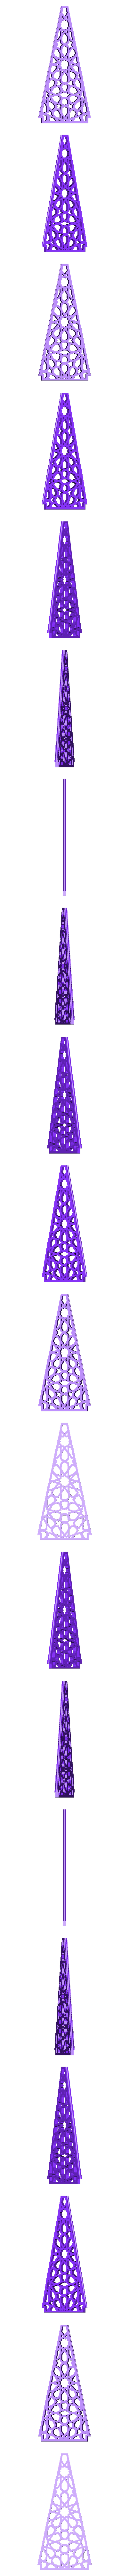 upper shade.stl Download free STL file Islamic Shades  • 3D print template, YEHIA